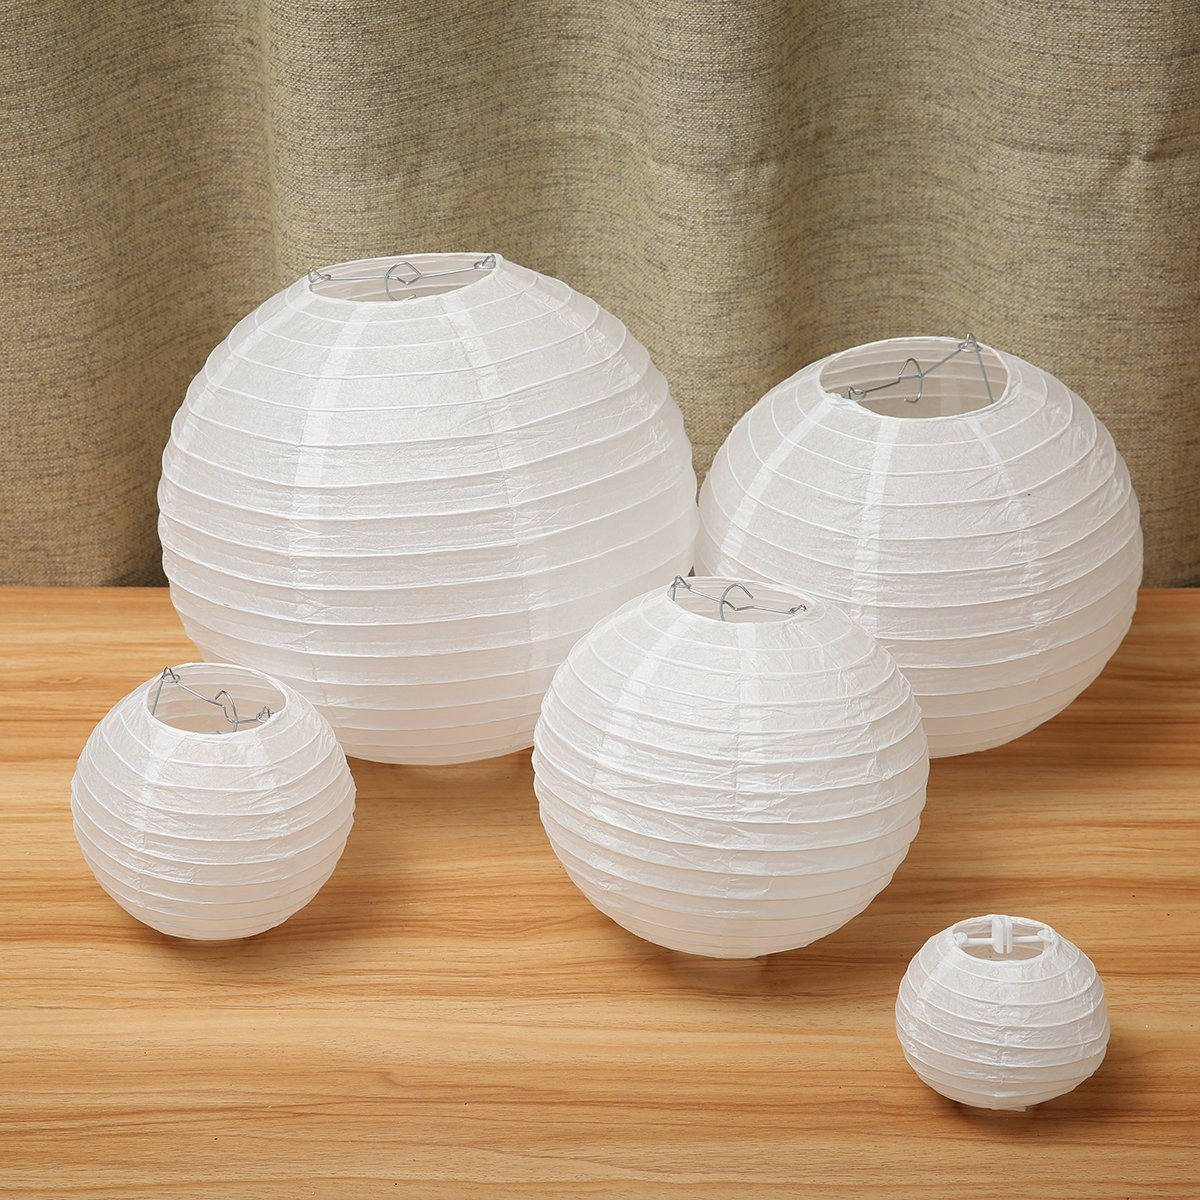 KINGSO 20 Pcs White Round Paper Lanterns with 5 Different Sizes for Brithday Wedding Party Celebration Decorations White